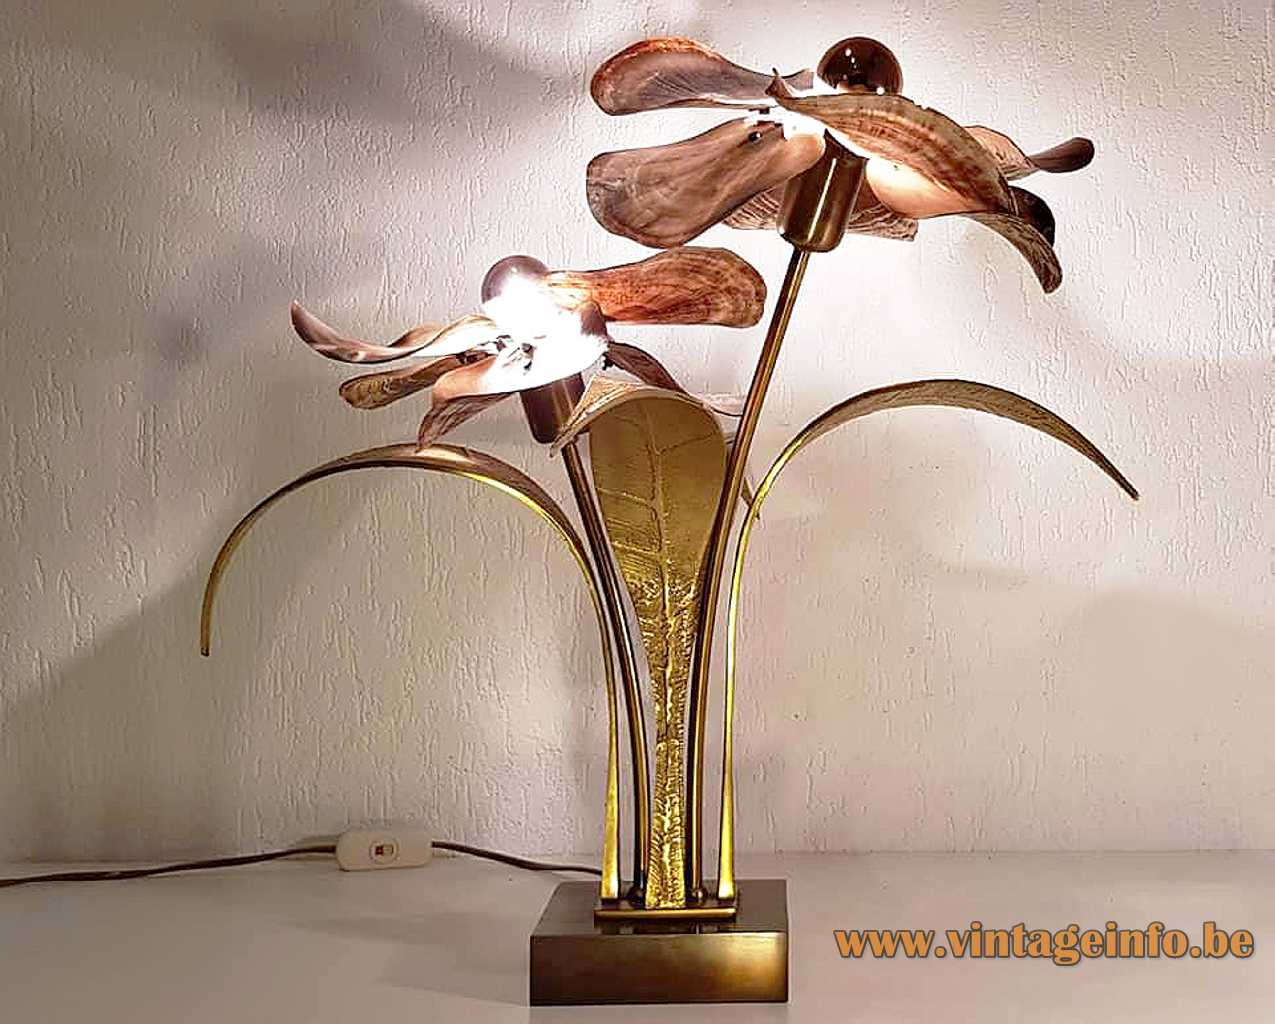 Willy Daro flower table lamp square brass base bronze leaves pink oyster shell 1970s design Belgium